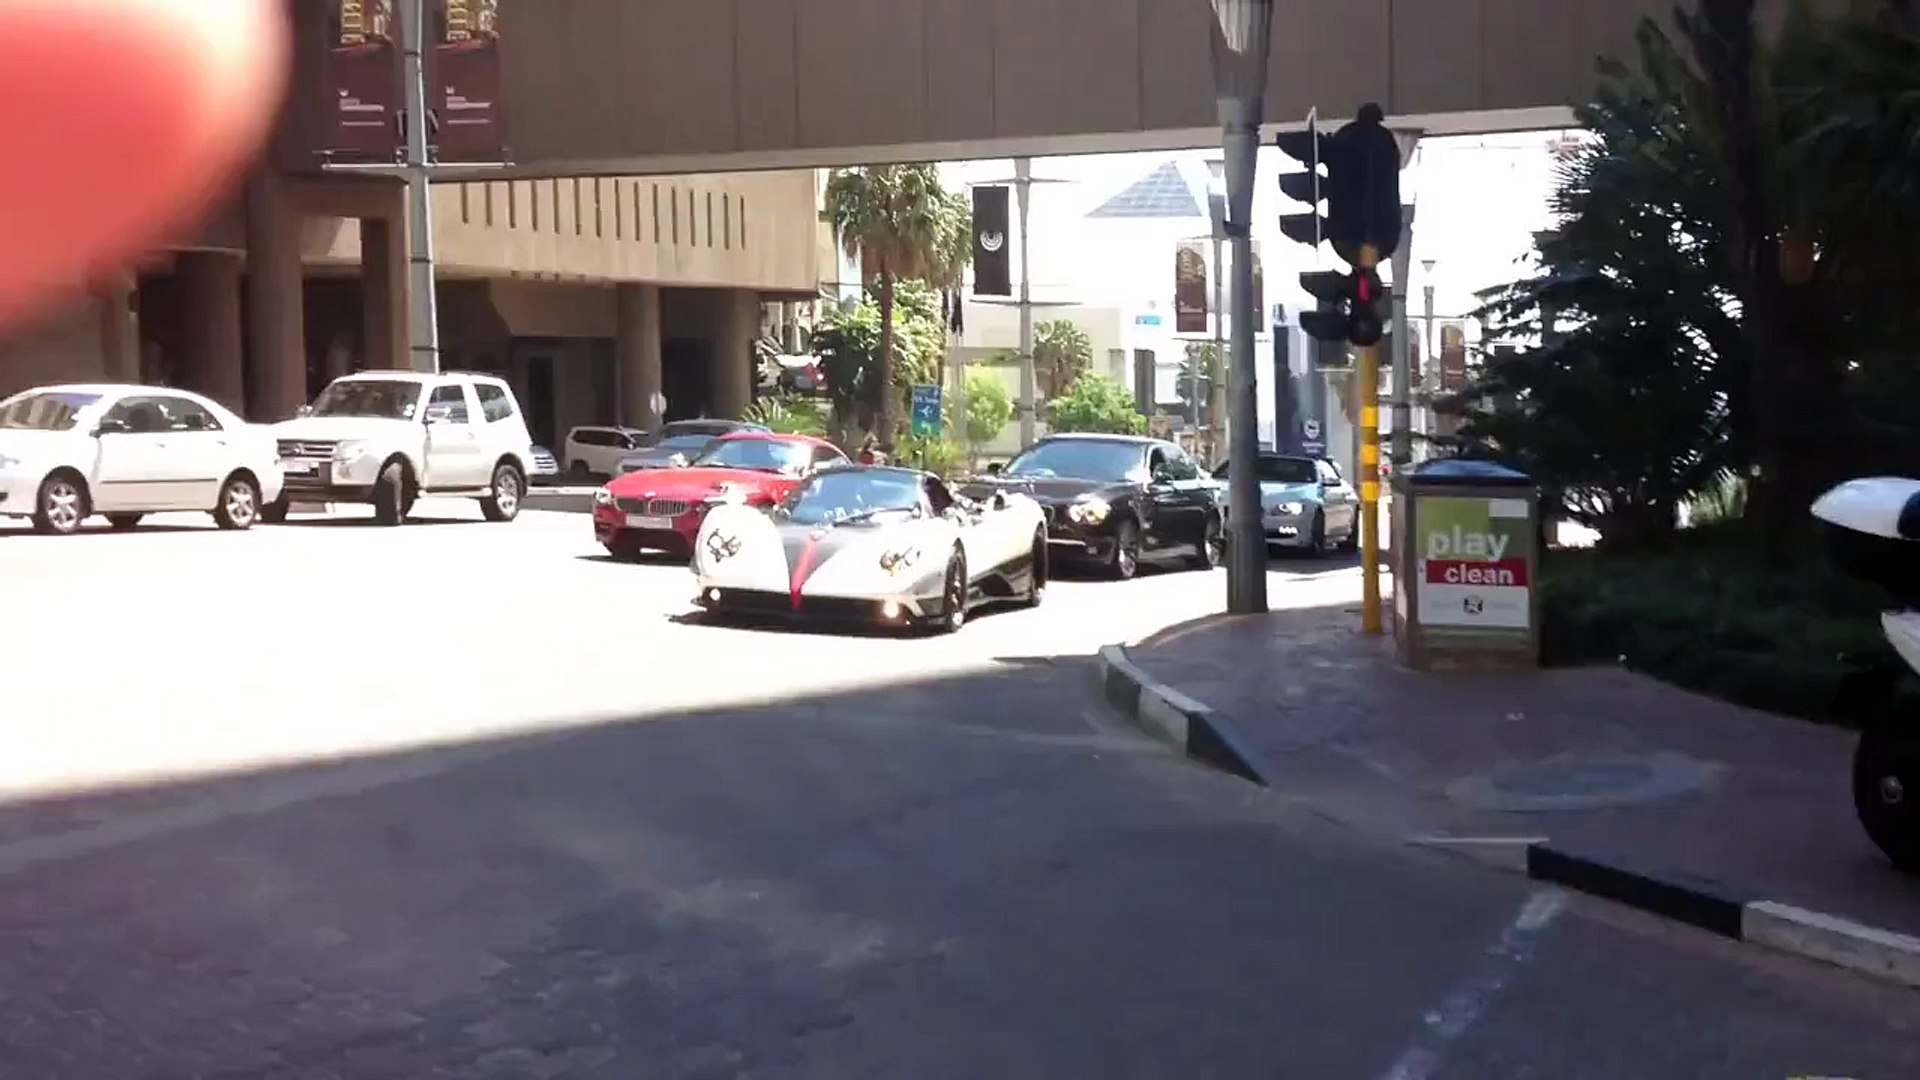 Pagani Zonda Roadster F Clubsport Spotted In Sandton South Africa Video Dailymotion